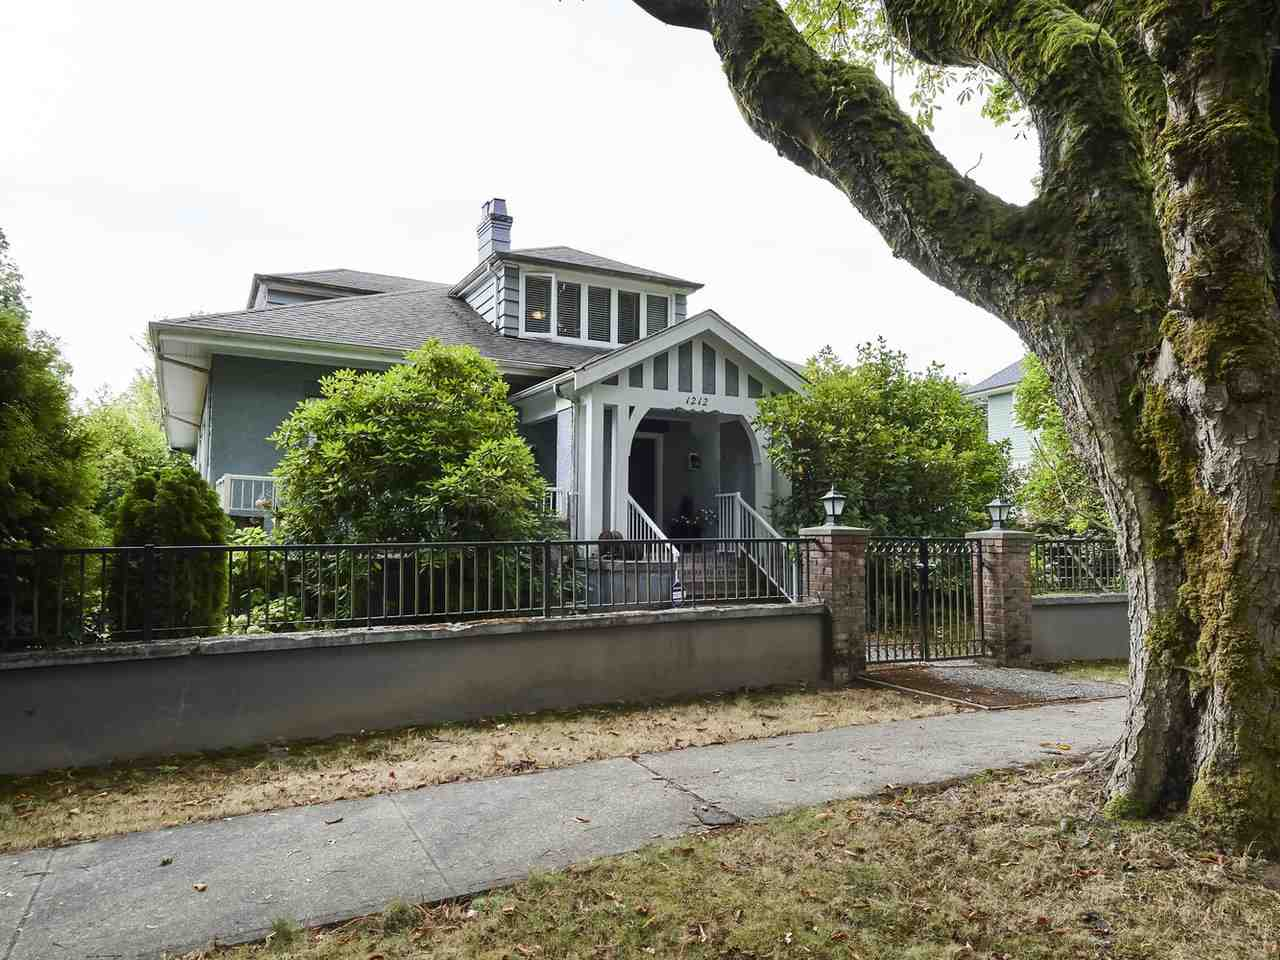 1212 Balfour, V6H 1X5, RARE FIND, BEAUTIFUL LEVEL CORNER LOT 113 X 116.8 SITS IN MOST PRESTIGIOUS FIRST SHAUGHNESSY LOCATION. EXCELLENT HOLDING PROPERTY. Updated & well kept. Over 6,500 sq.ft. of living area offers 5 bedrooms, 4 baths, 9' ceiling, extensive use of hardwood floor thru-out the main. Entertaining sized living & dining rooms, 2 generous sized MASTER BEDROOMS with ensuite and a two car attached garage. Bonus; large patio at rear and private west facing fully fenced side yard. CLOSE TO WELL KNOWN SCHOOL CATCHMENT; YORK HOUSE, ST. GEORGE'S, UBC, SHOPPING, TRANSIT.